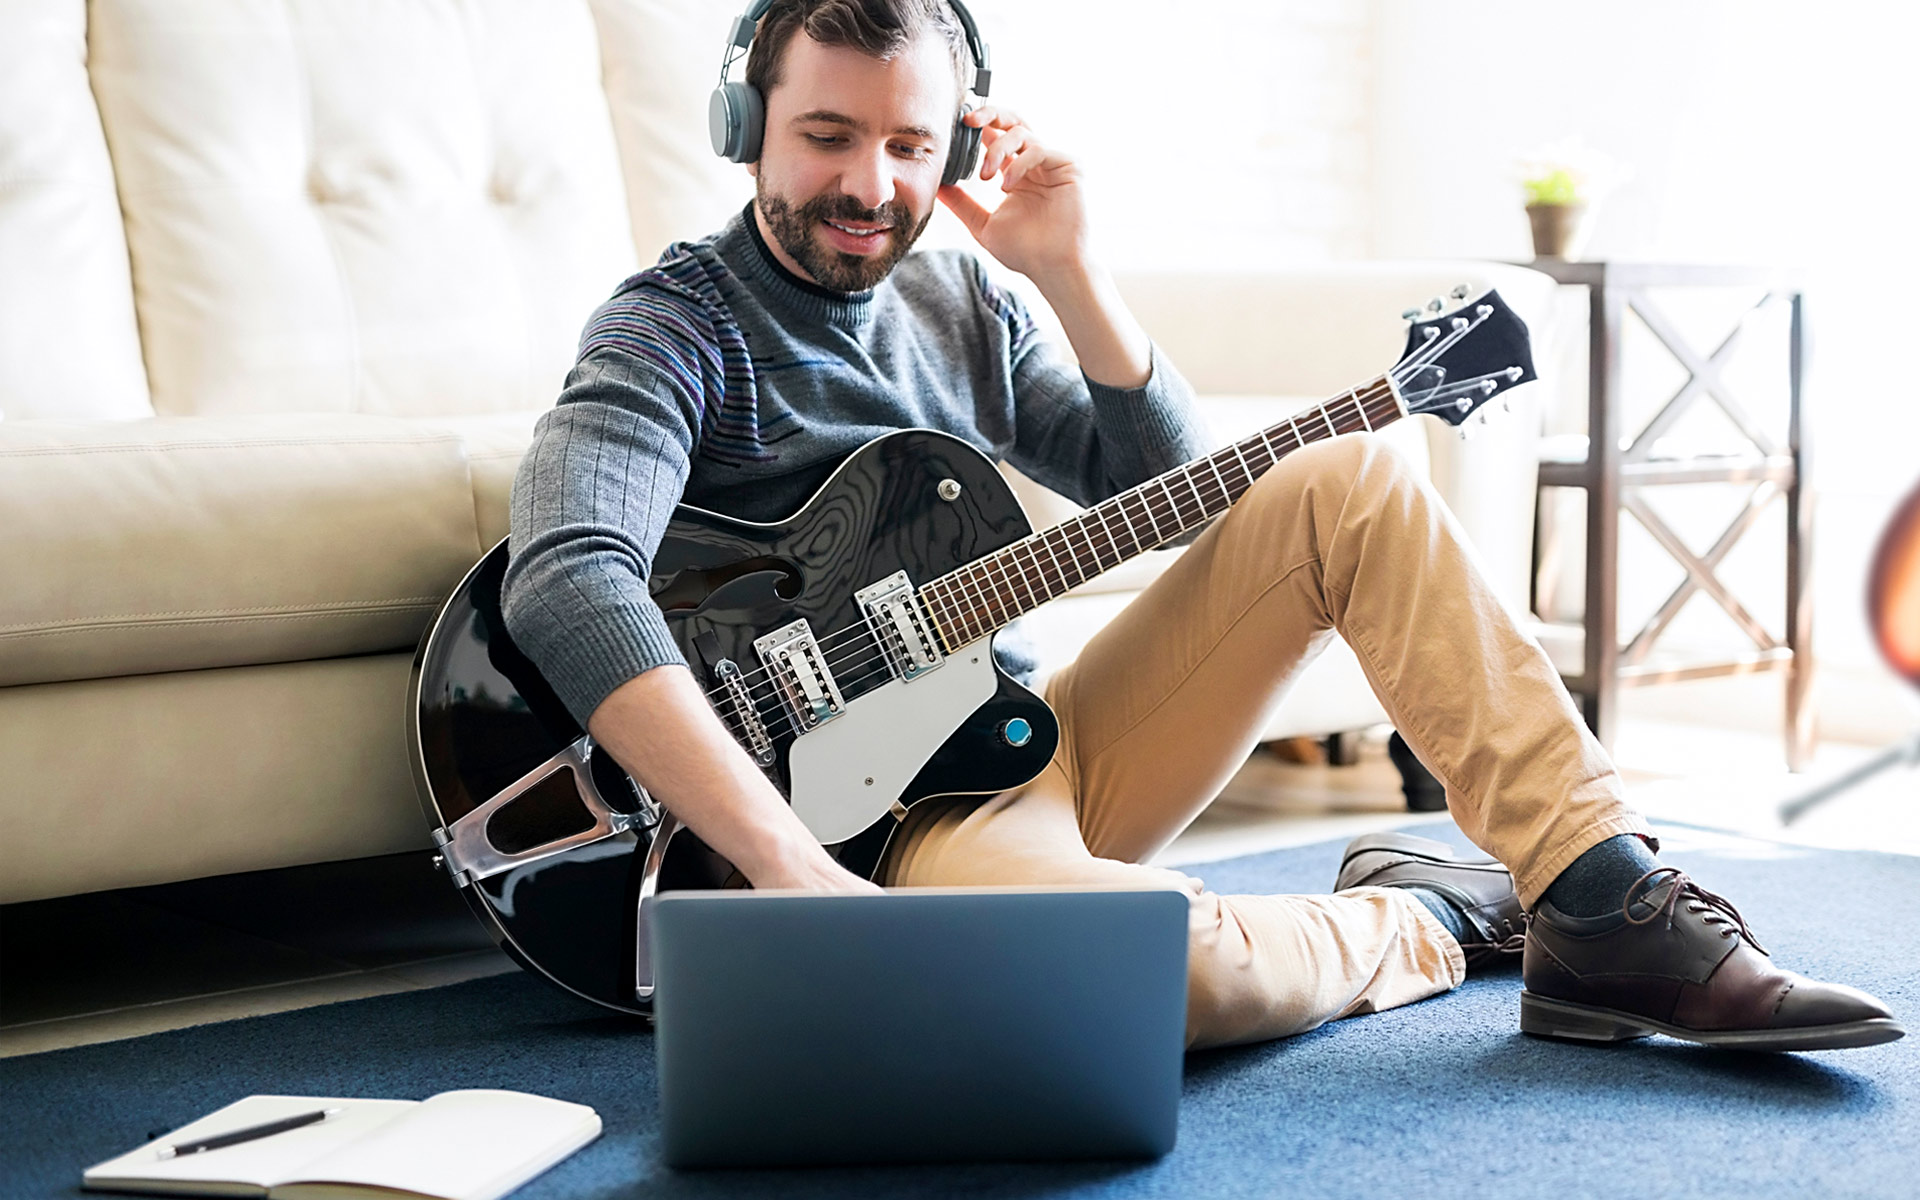 Song Lyrics Generators: Are They Good for Songwriters?